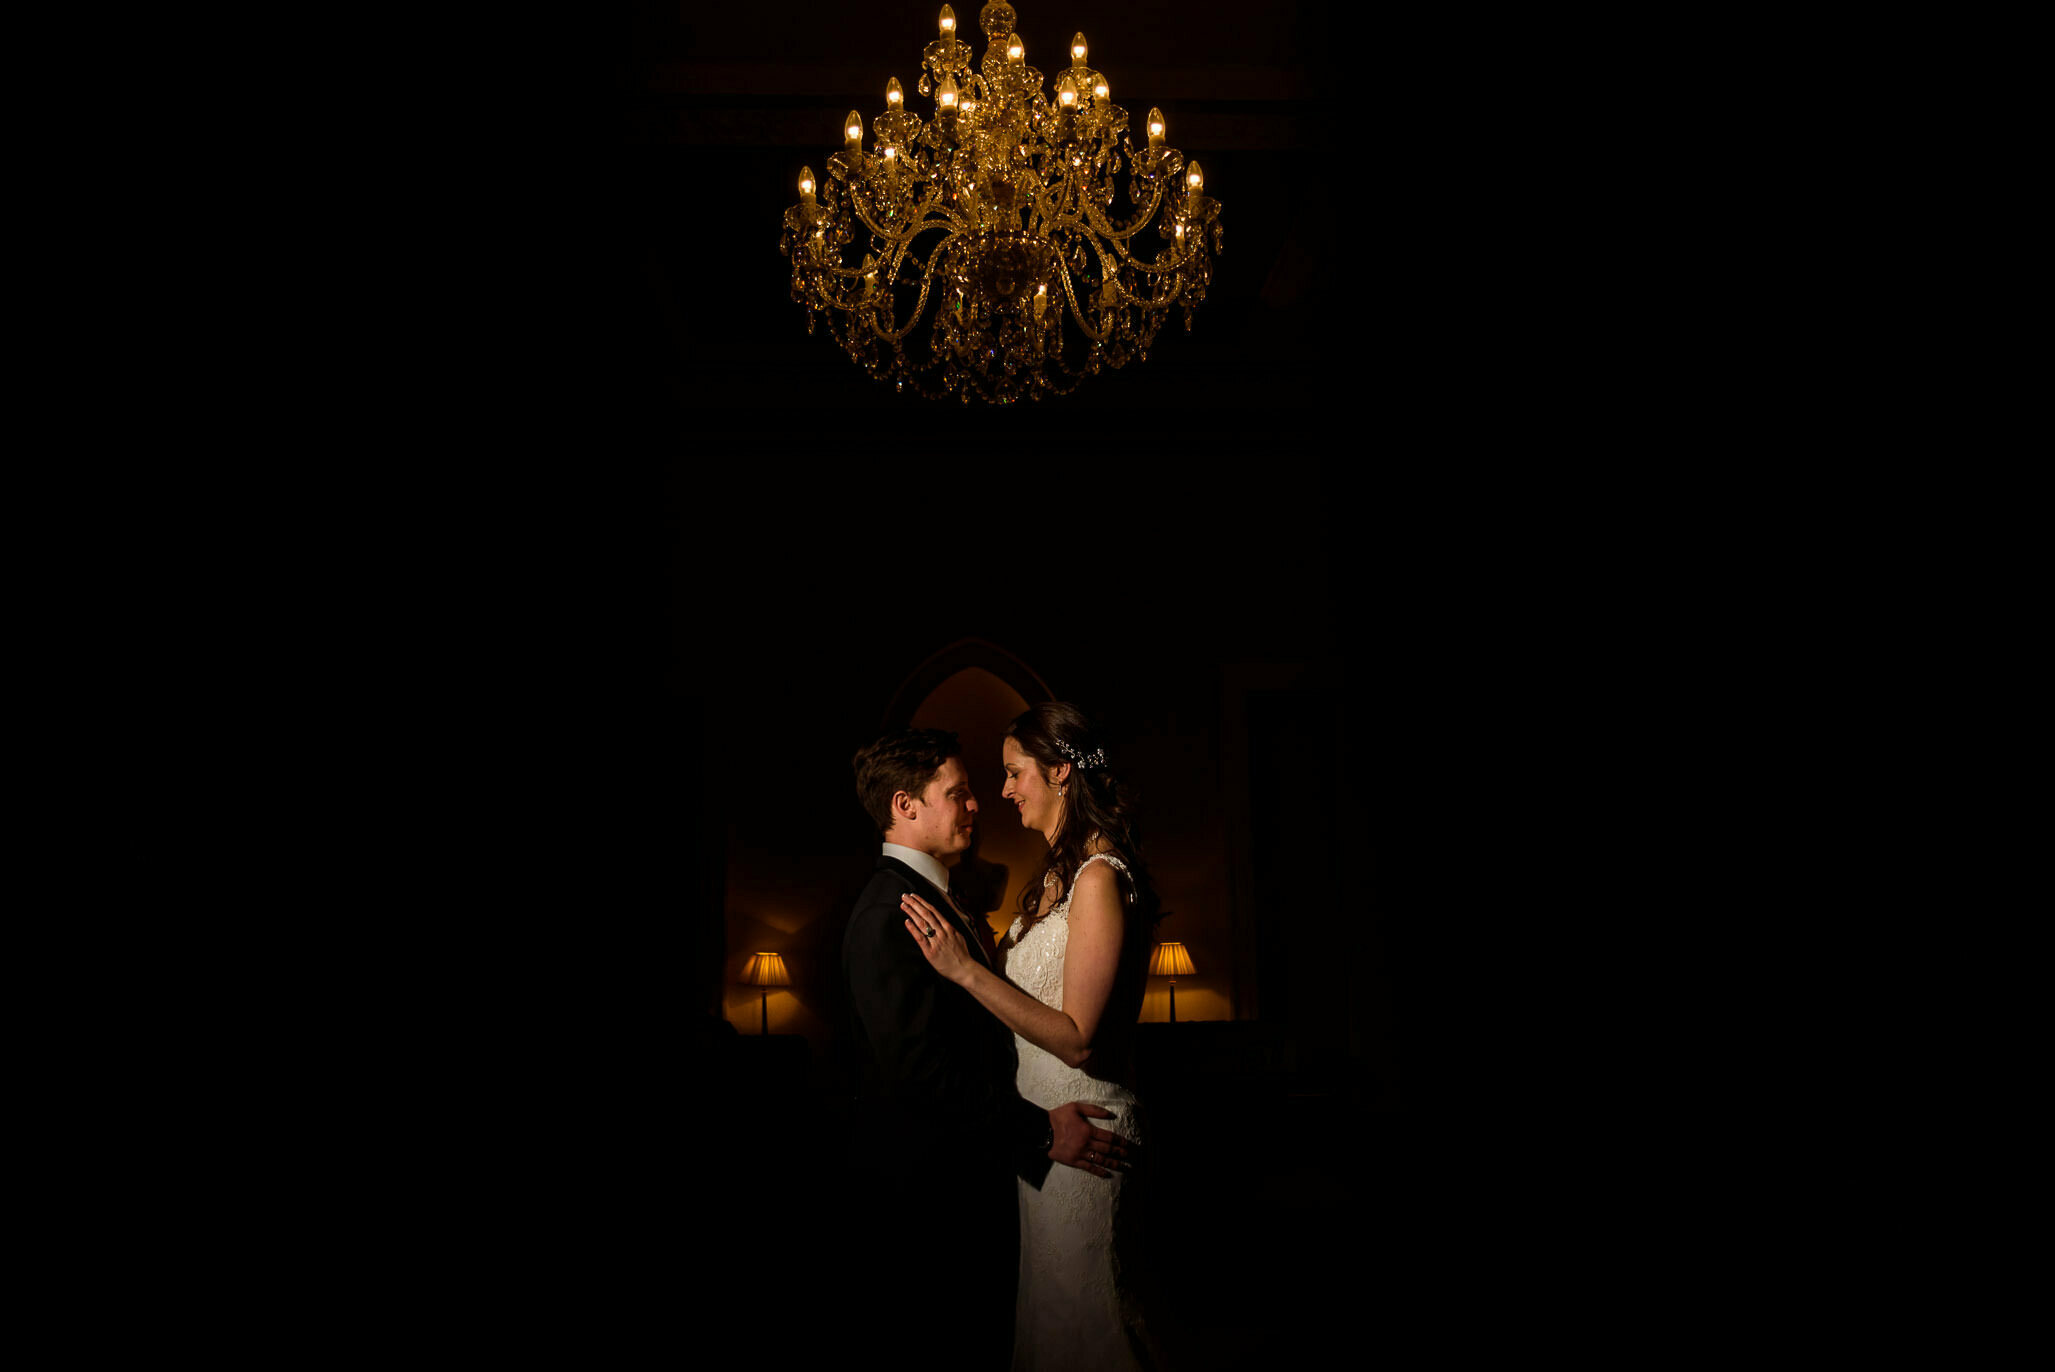 Magmod at clearwell castle wedding